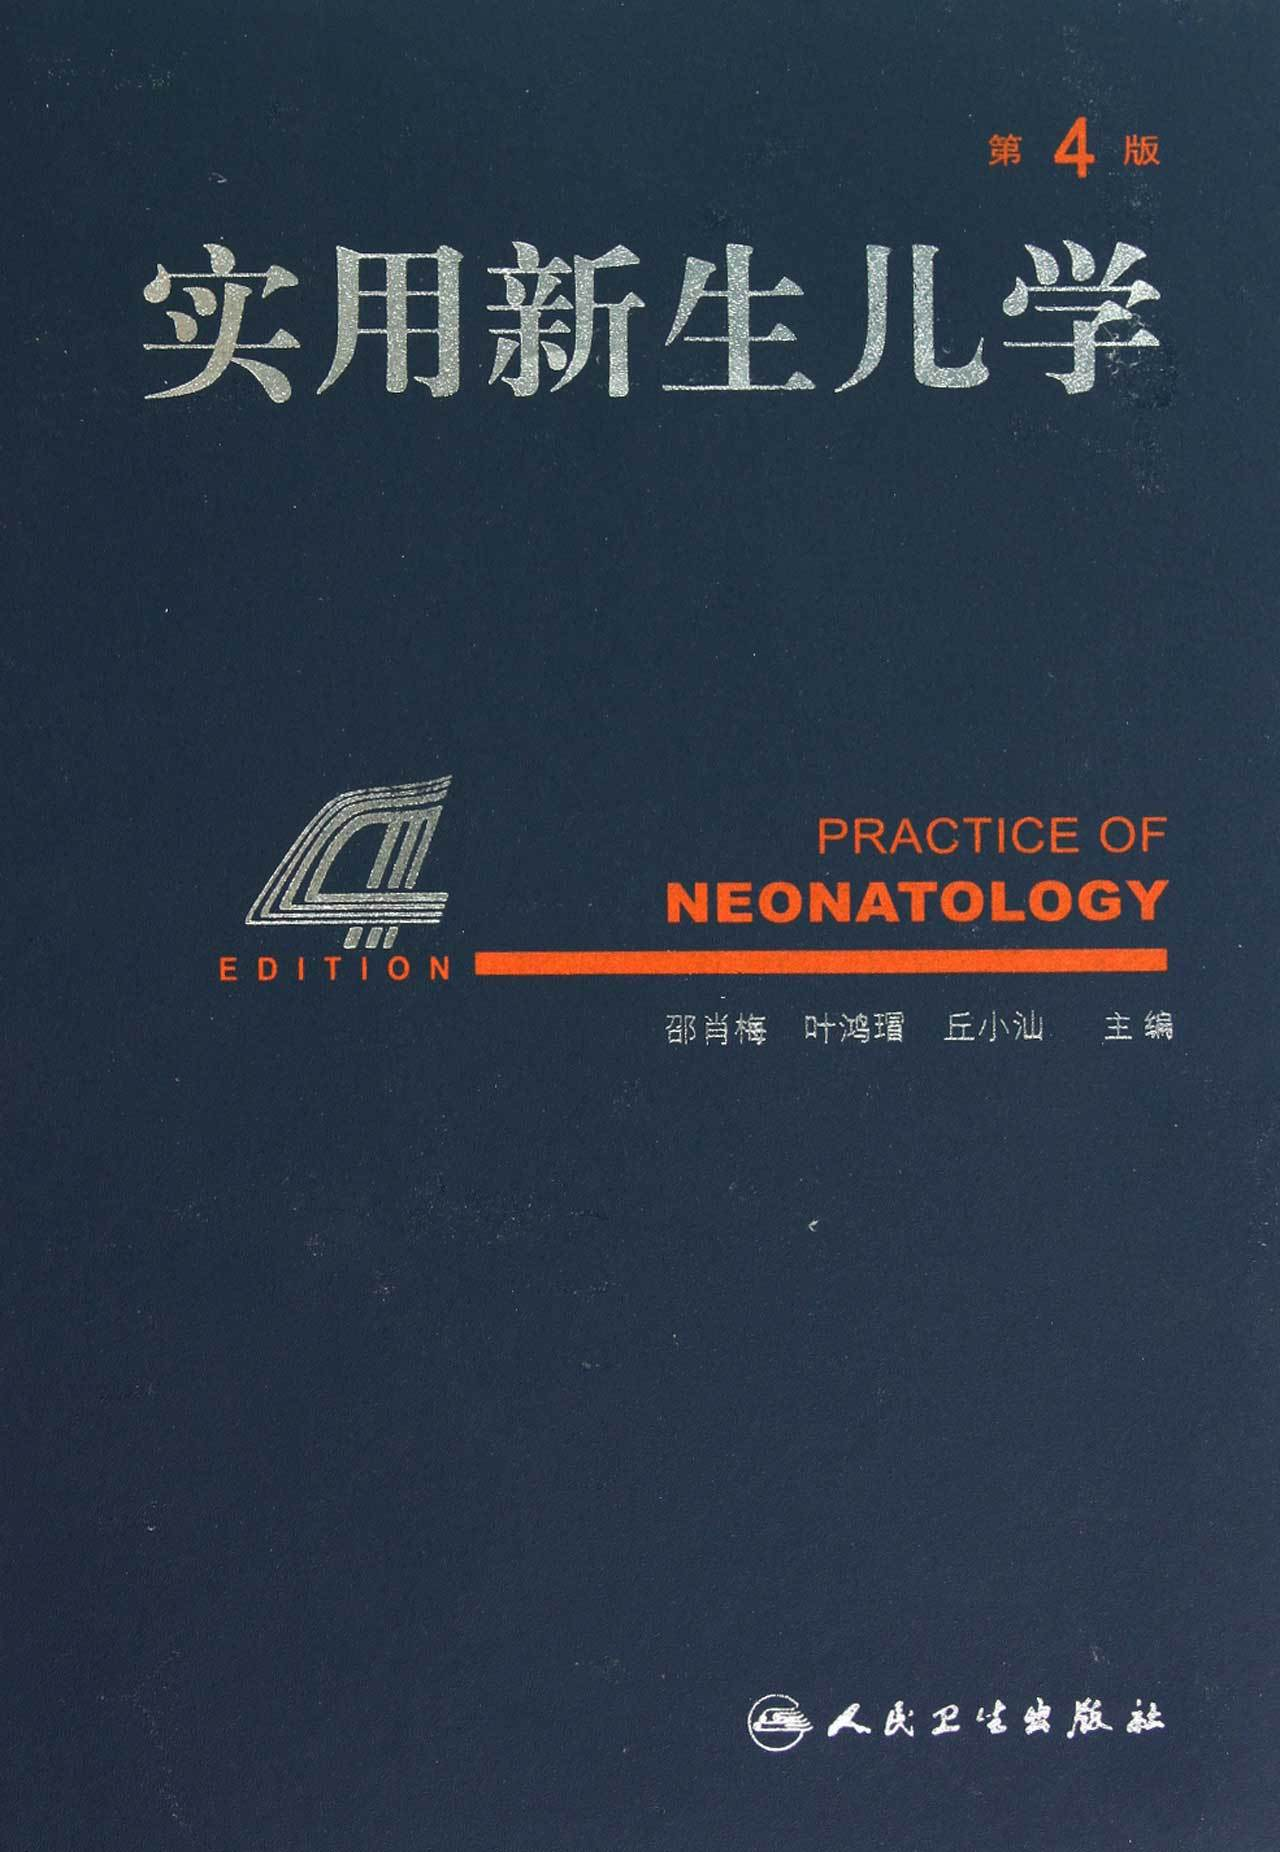 [Free shipping] practical neonatology (4th edition) fourth edition shao xiao mei/hung mao ye /Childers' shan small editor of people's health